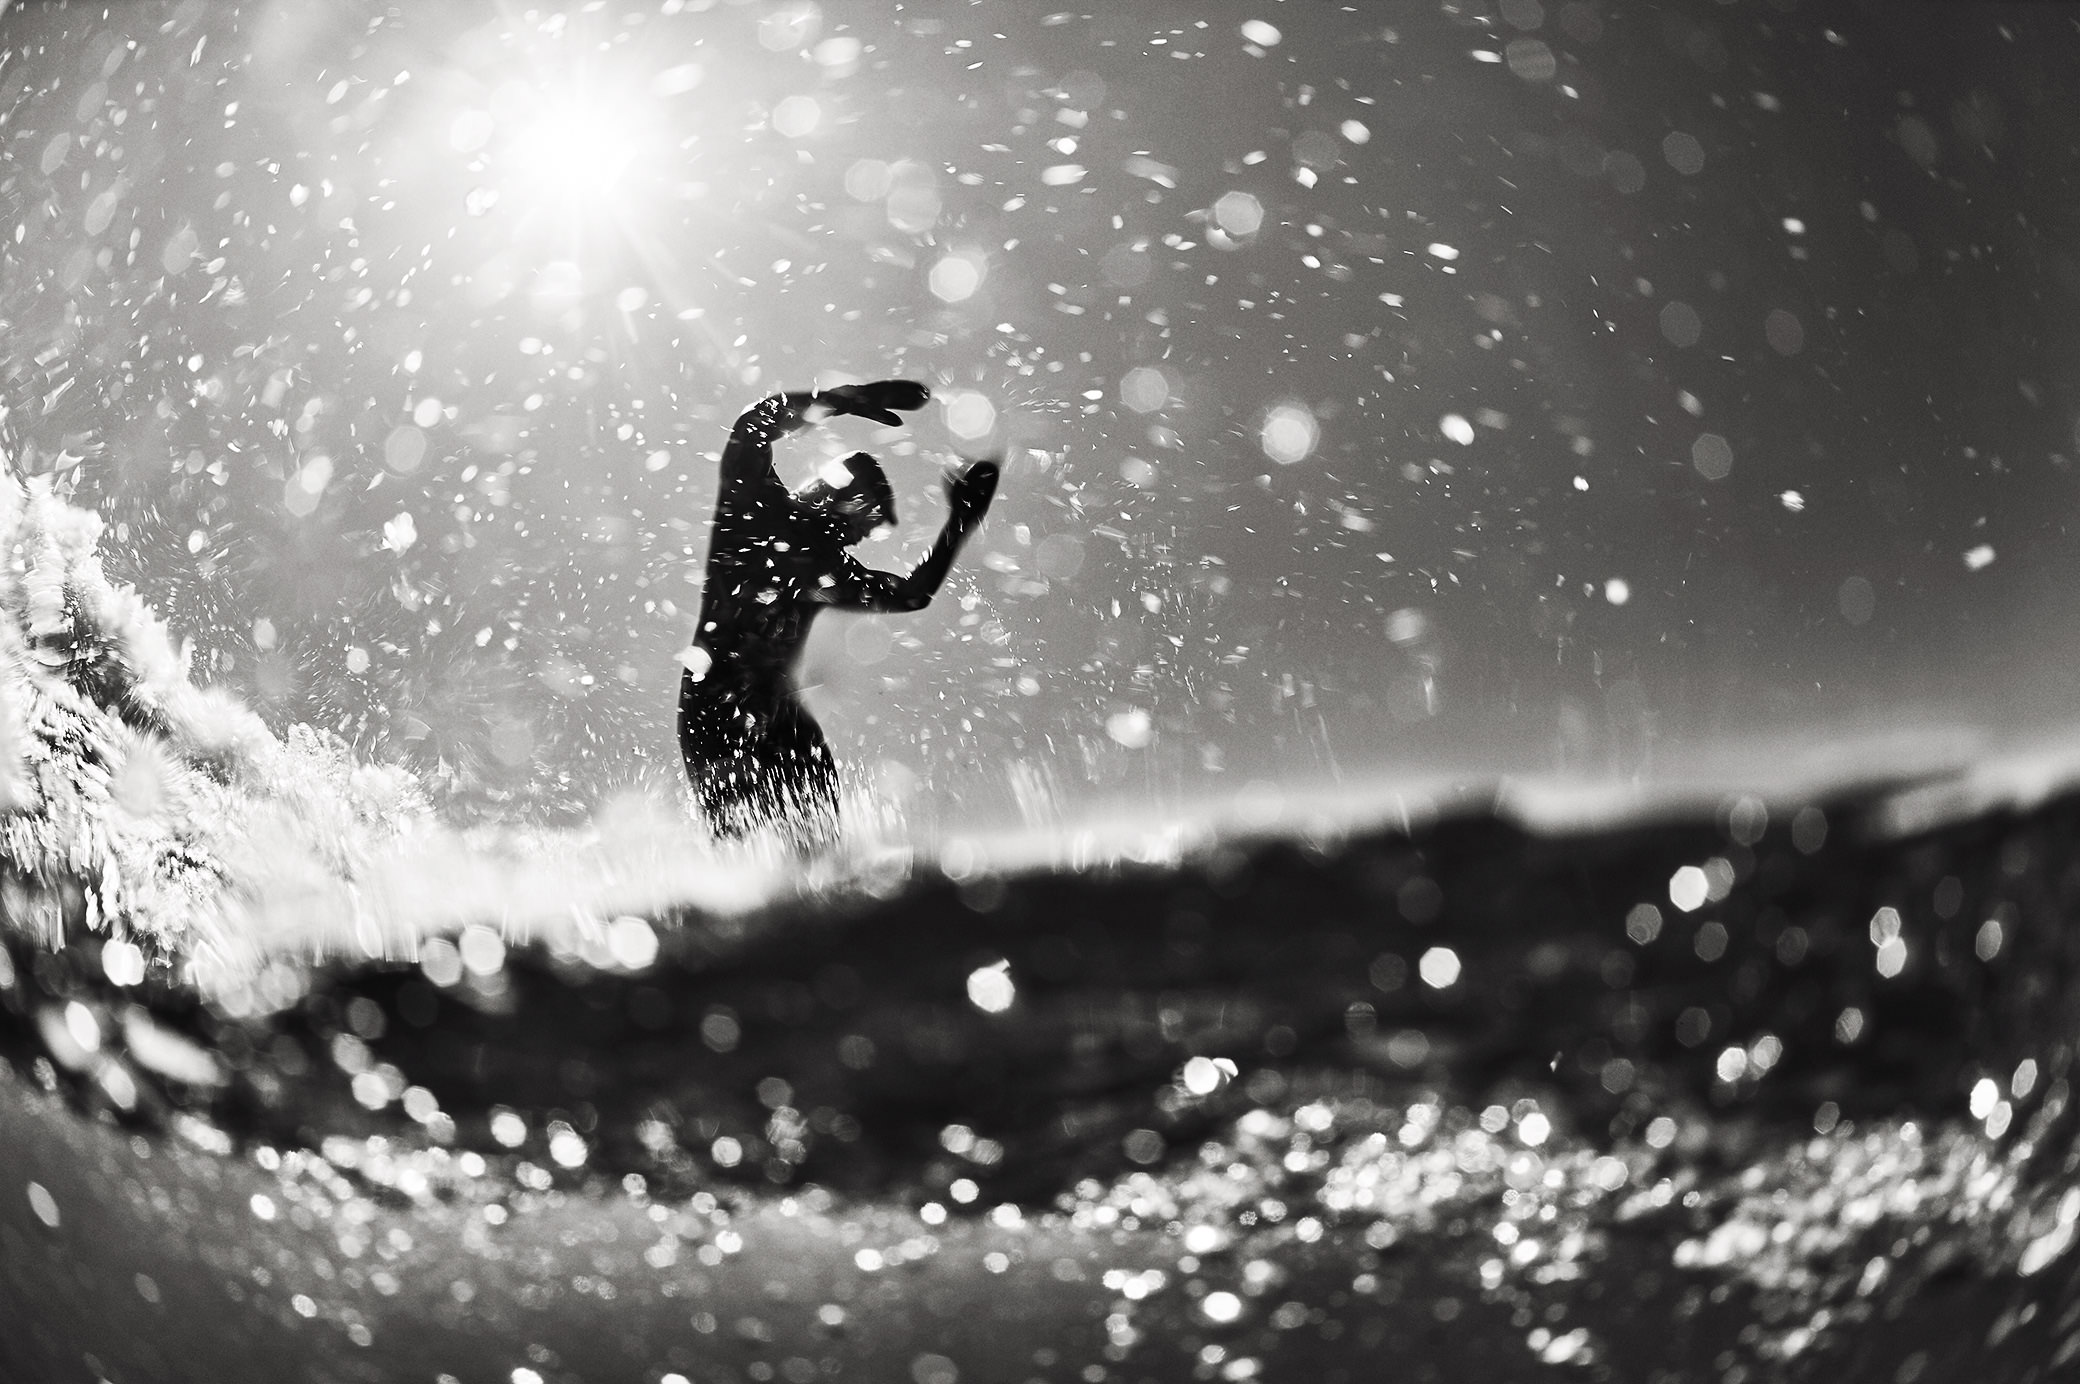 New York Surf Photographer NYC